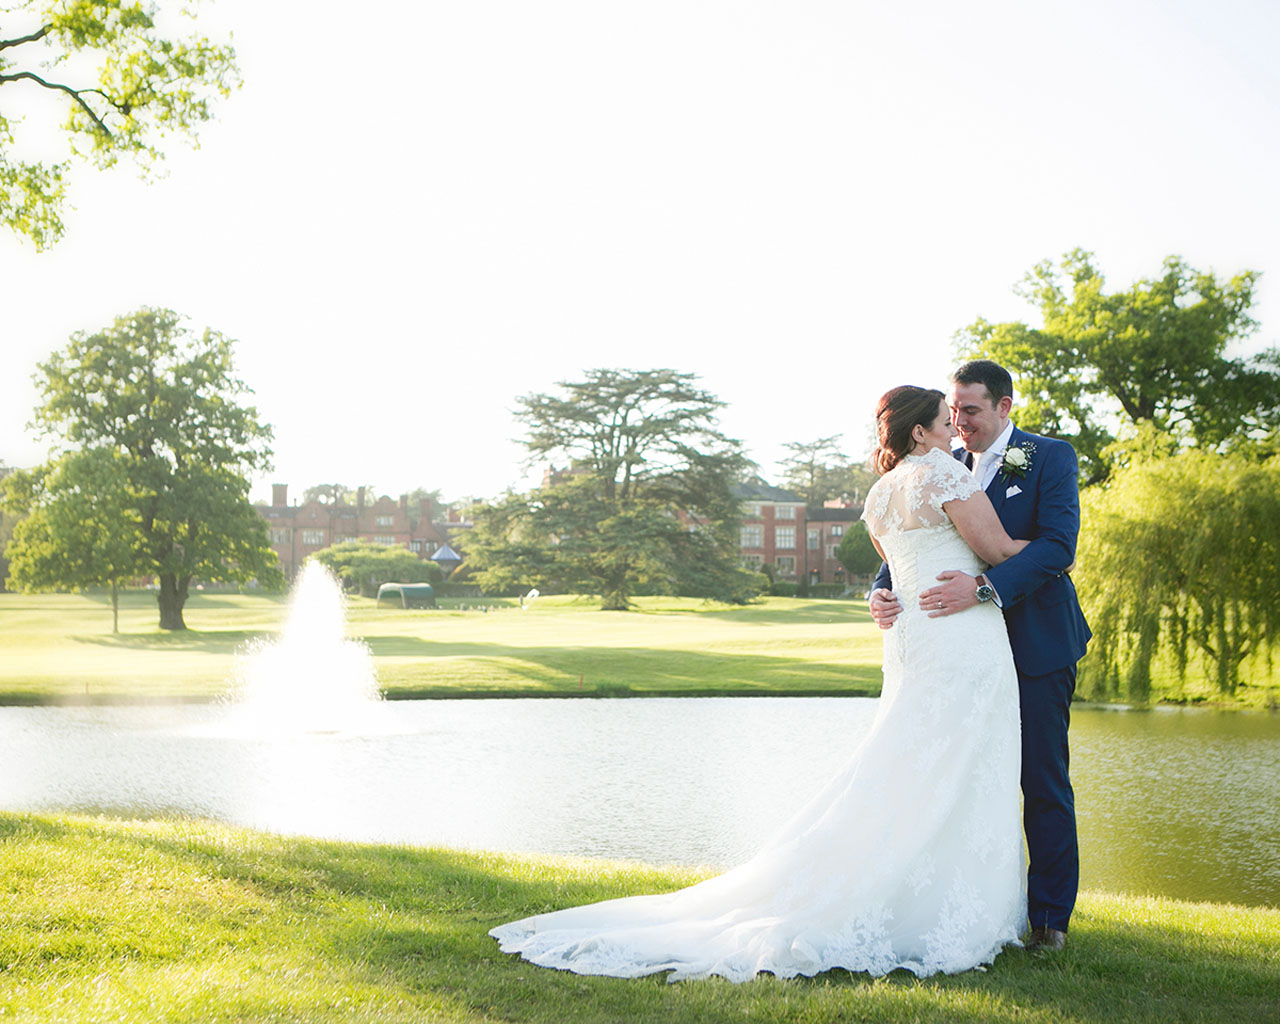 Anne Marie and Andrew Wedding - Photography by Katrina Matthews Photography - Videography by Veiled Productions - Hanbury Manor Wedding Videographer